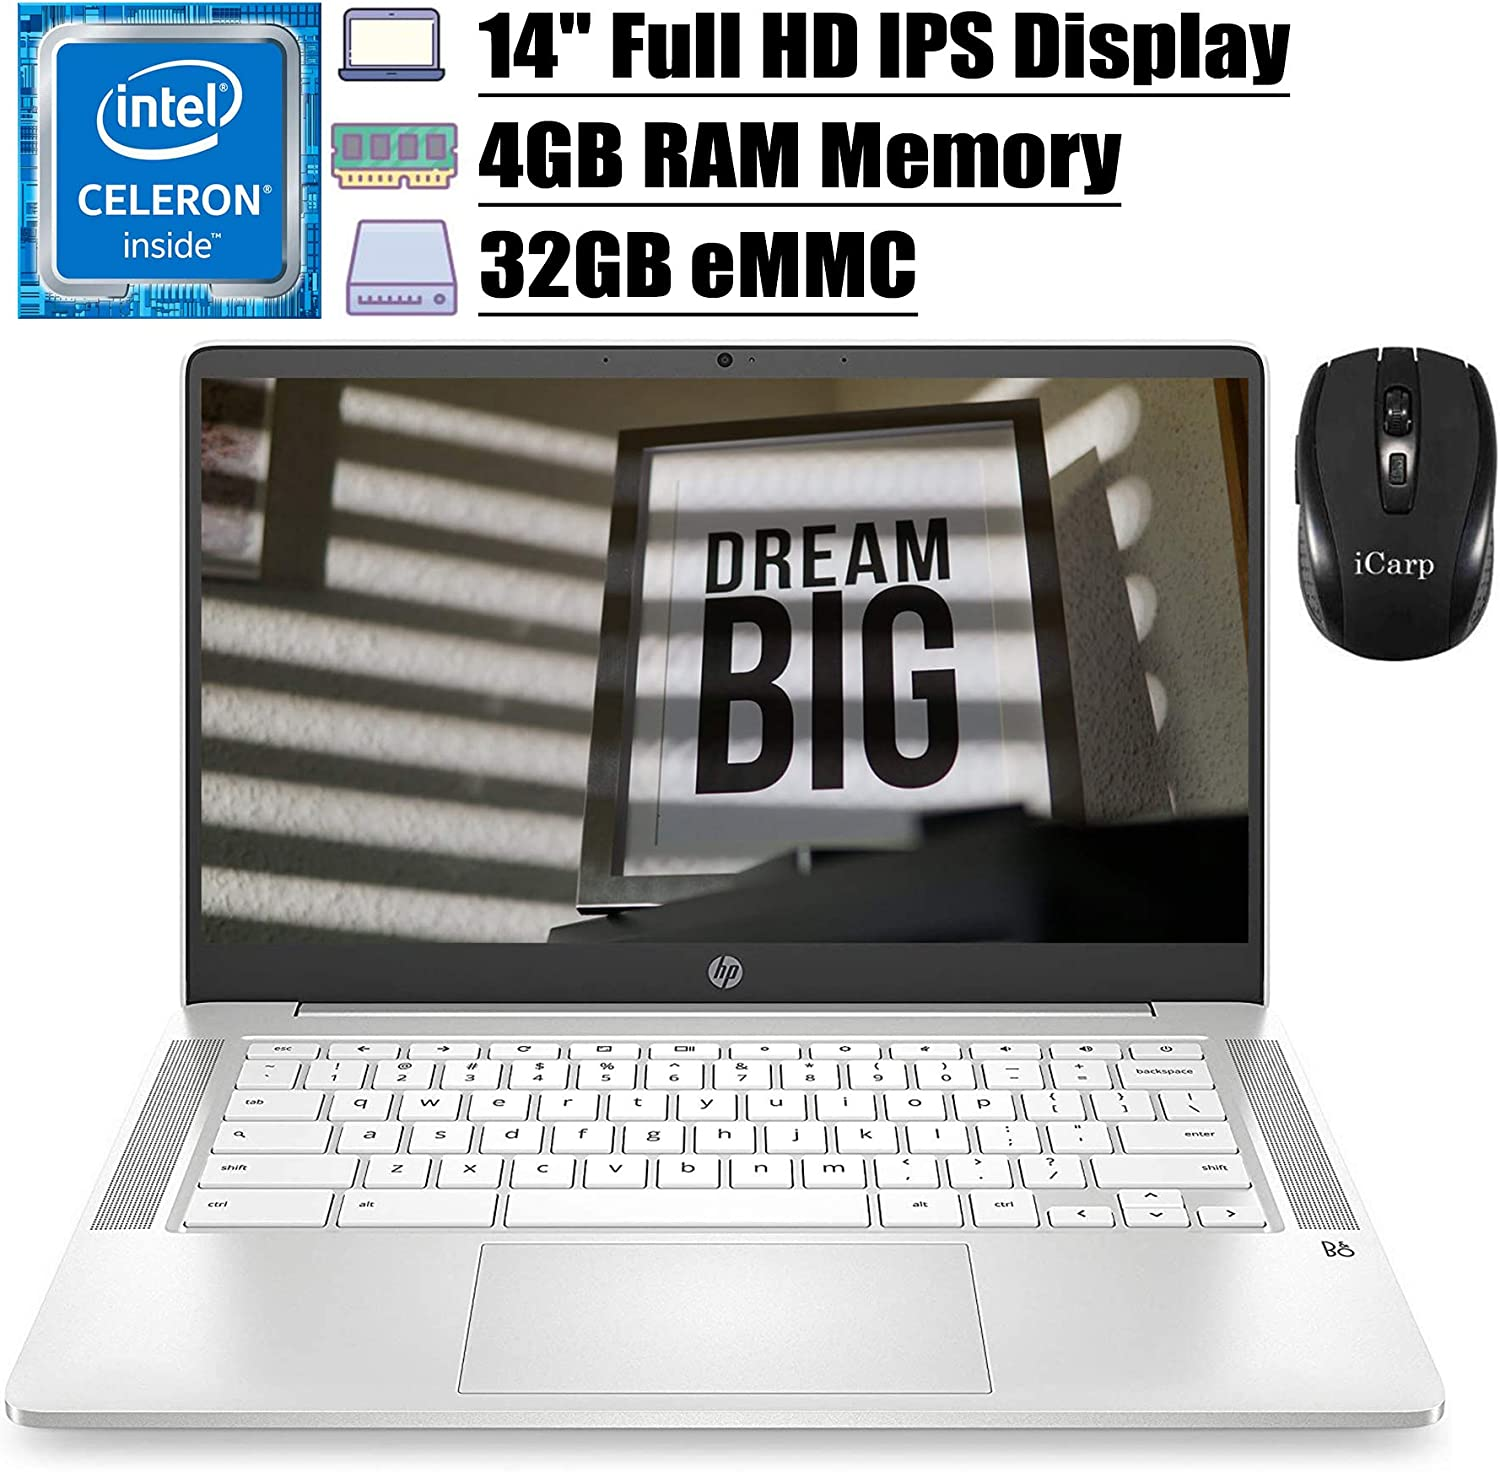 "2020 Flagship HP Chromebook 14 Laptop Computer 14"" FHD IPS Display Intel Celeron N4000 4GB RAM 32GB eMMC Intel UHD Graphics 600 B&O Webcam WiFi Backlit Chrome OS (White)+ iCarp Wireless Mouse"